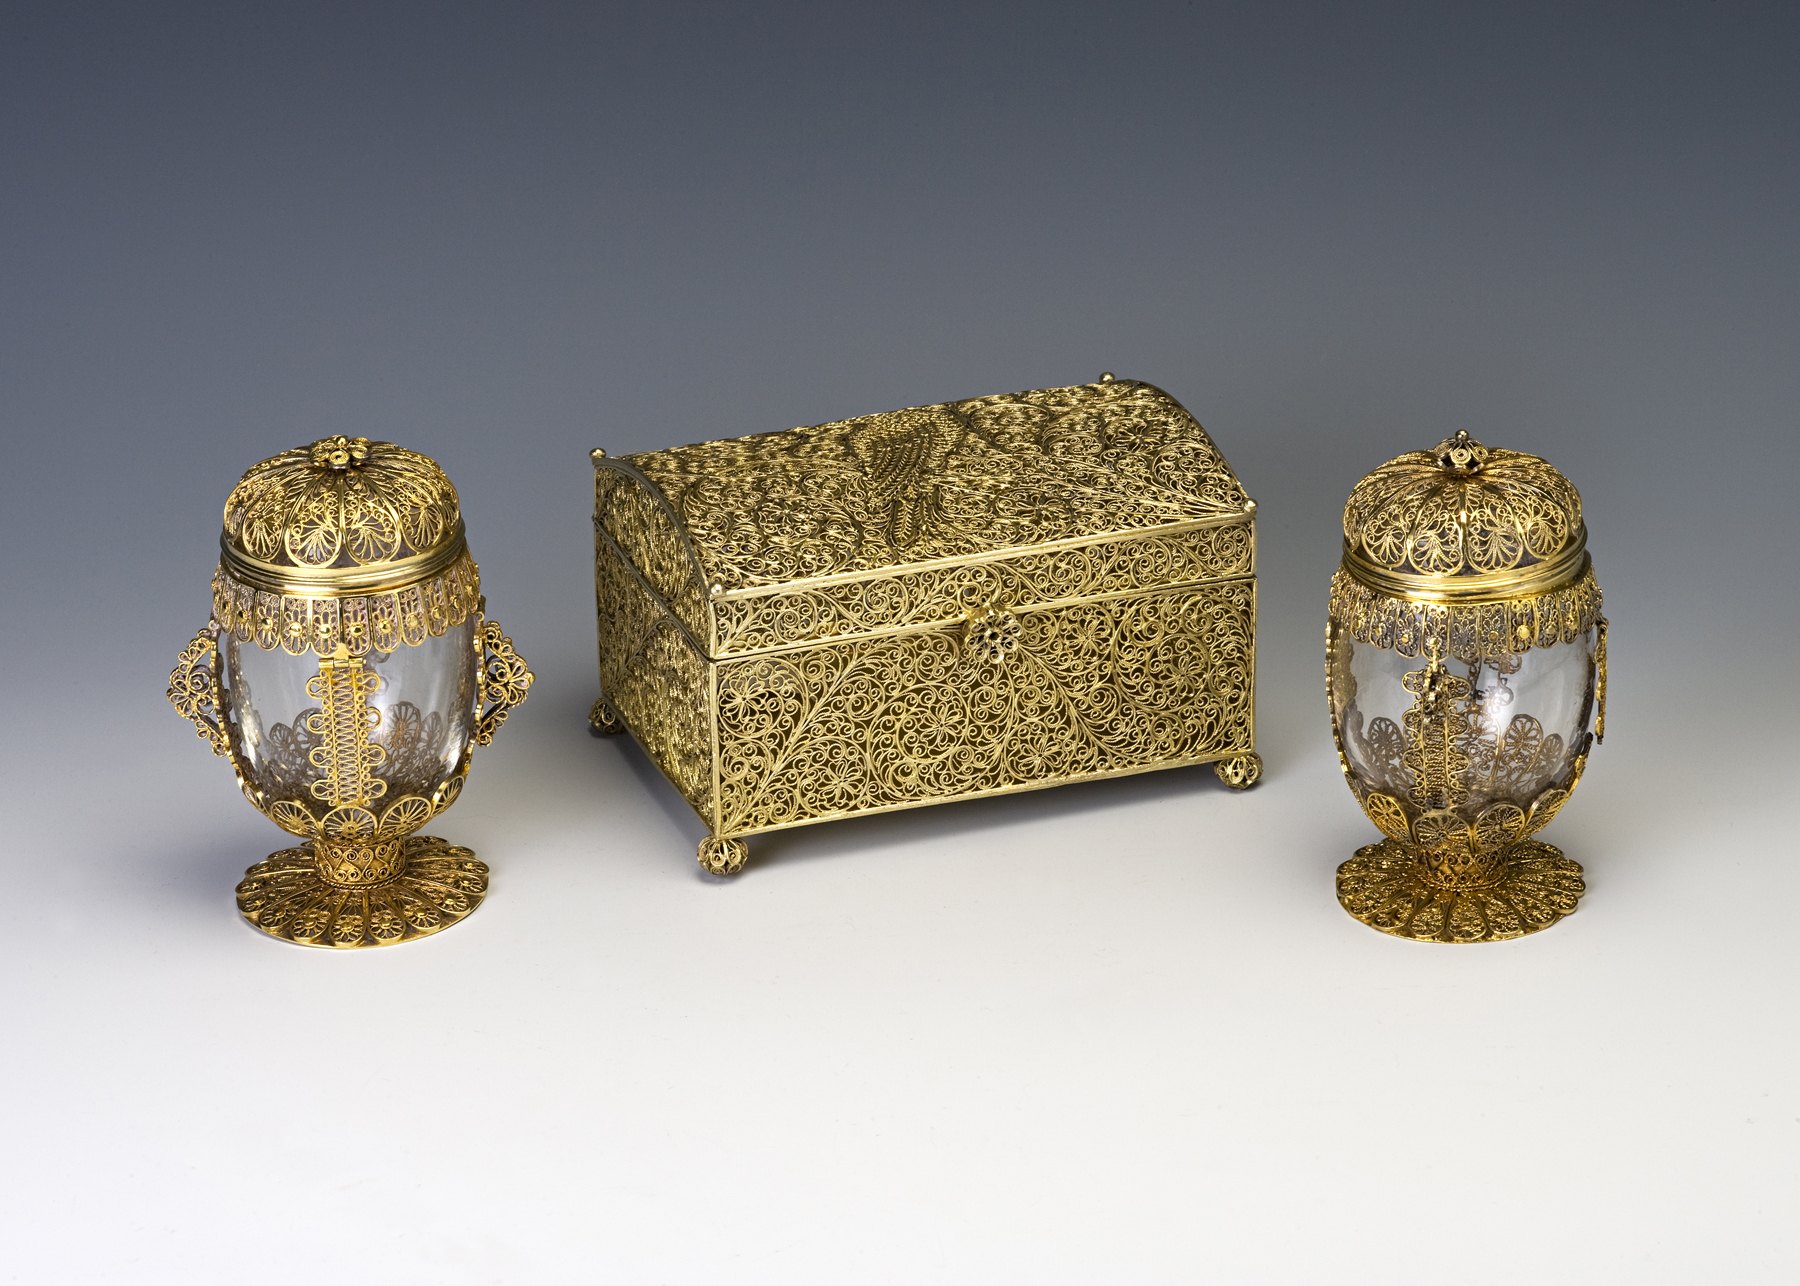 A part silver-gilt filigree toilet set, circa 1700.